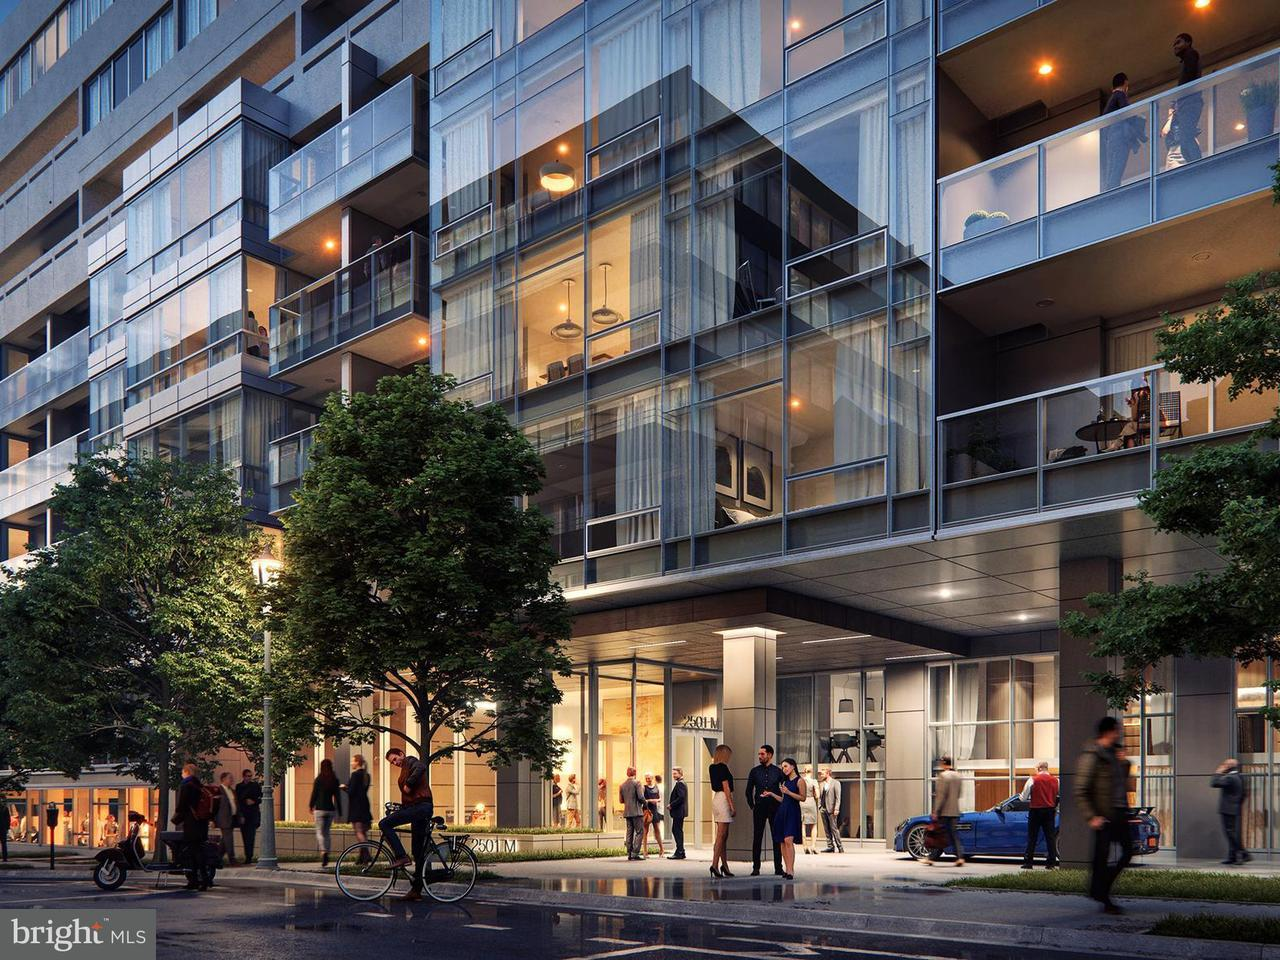 Condominium for Sale at 2501 M St Nw #211 2501 M St Nw #211 Washington, District Of Columbia 20037 United States